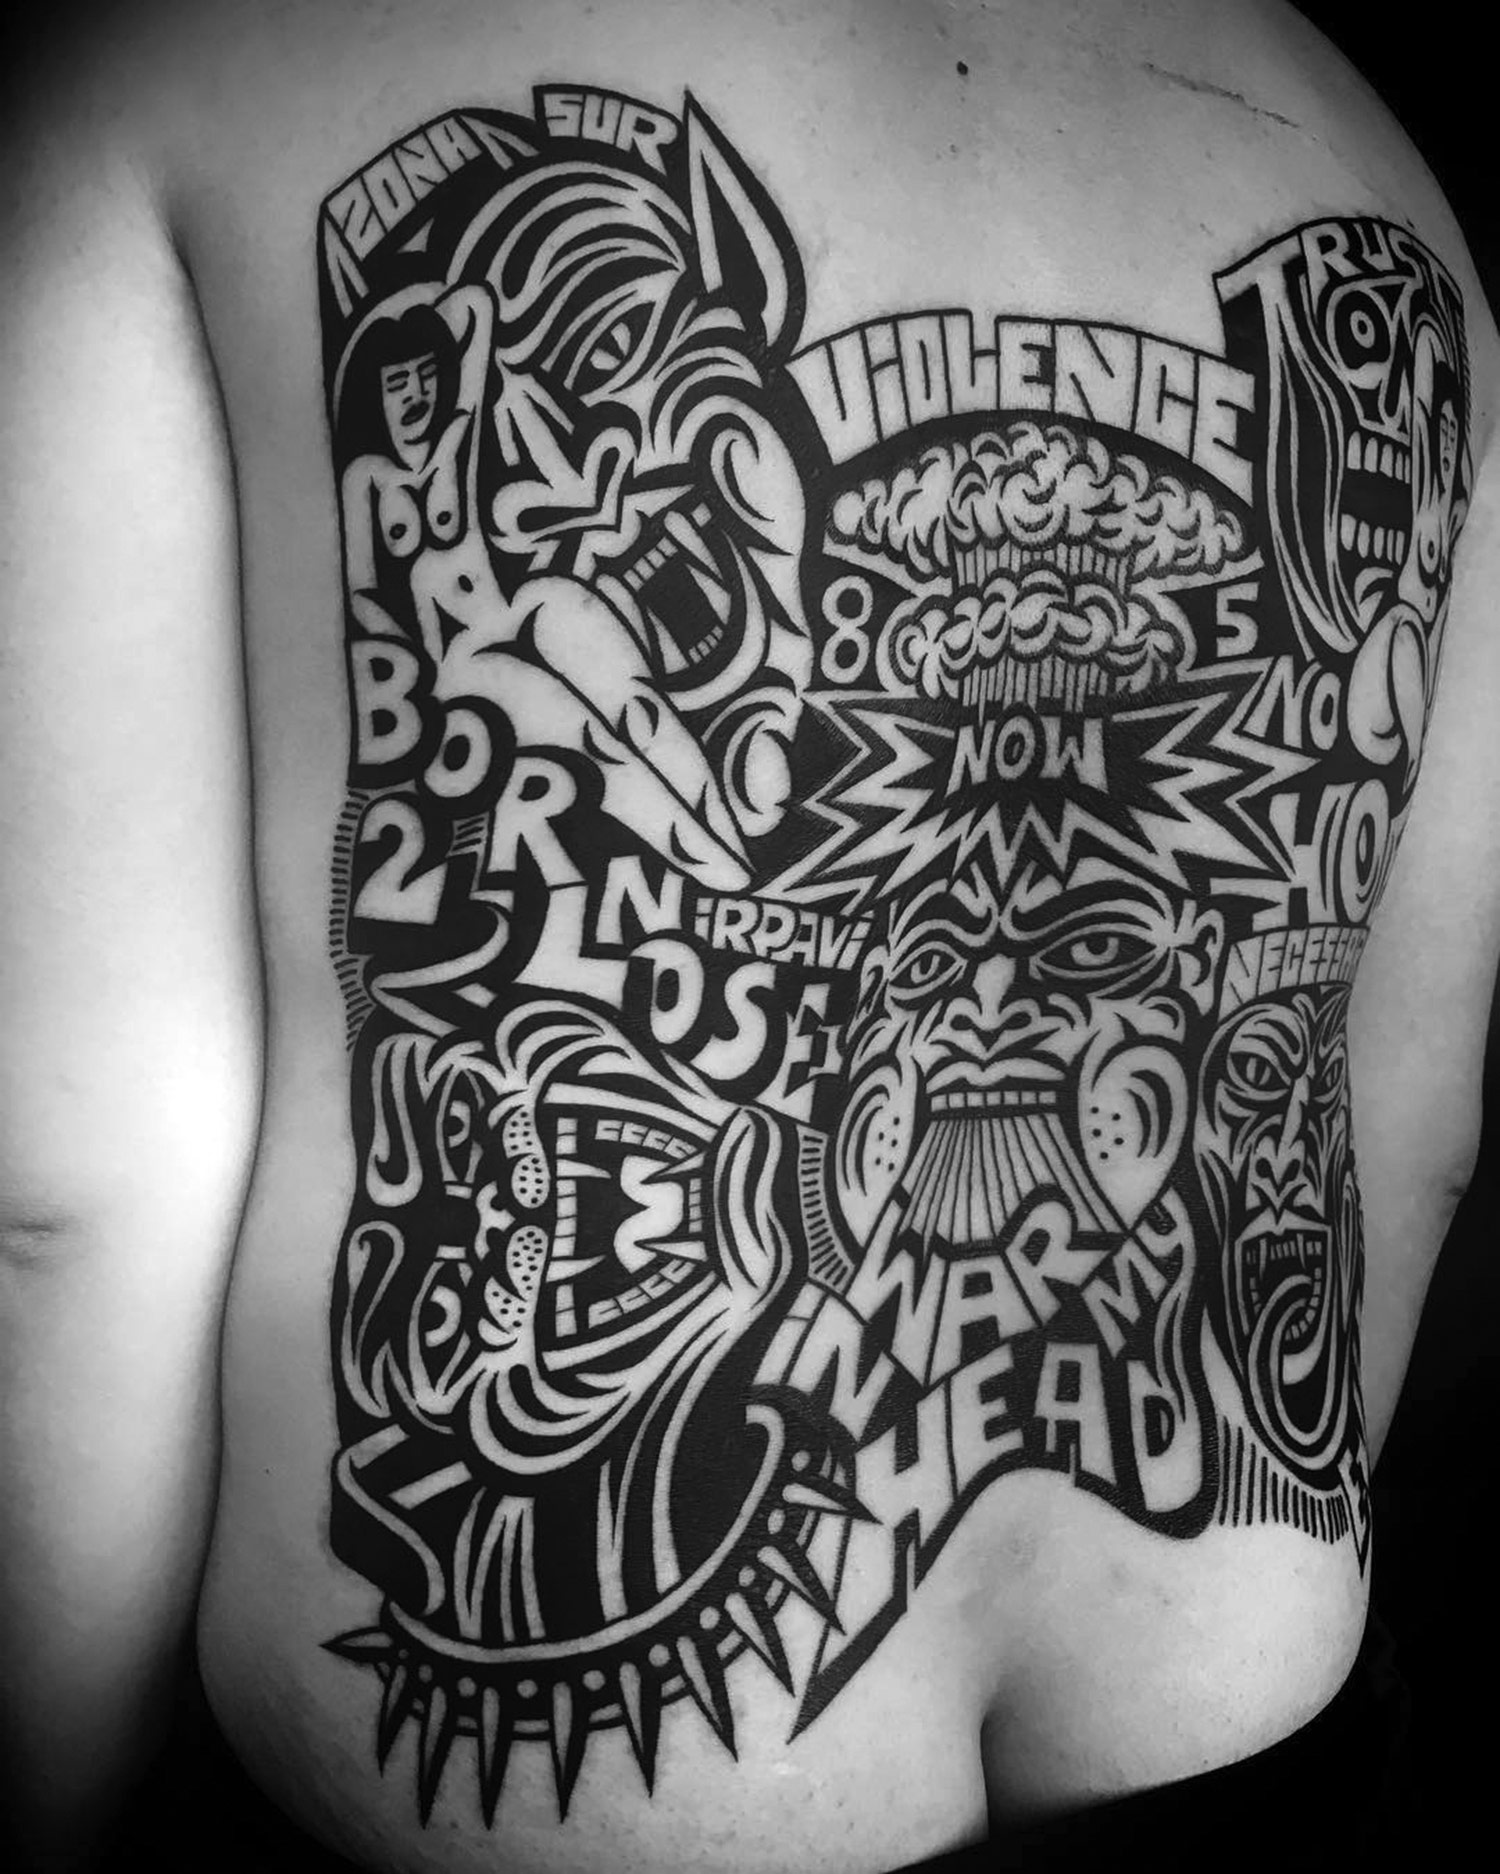 text-heavy back tattoo by by luxiano street cassic